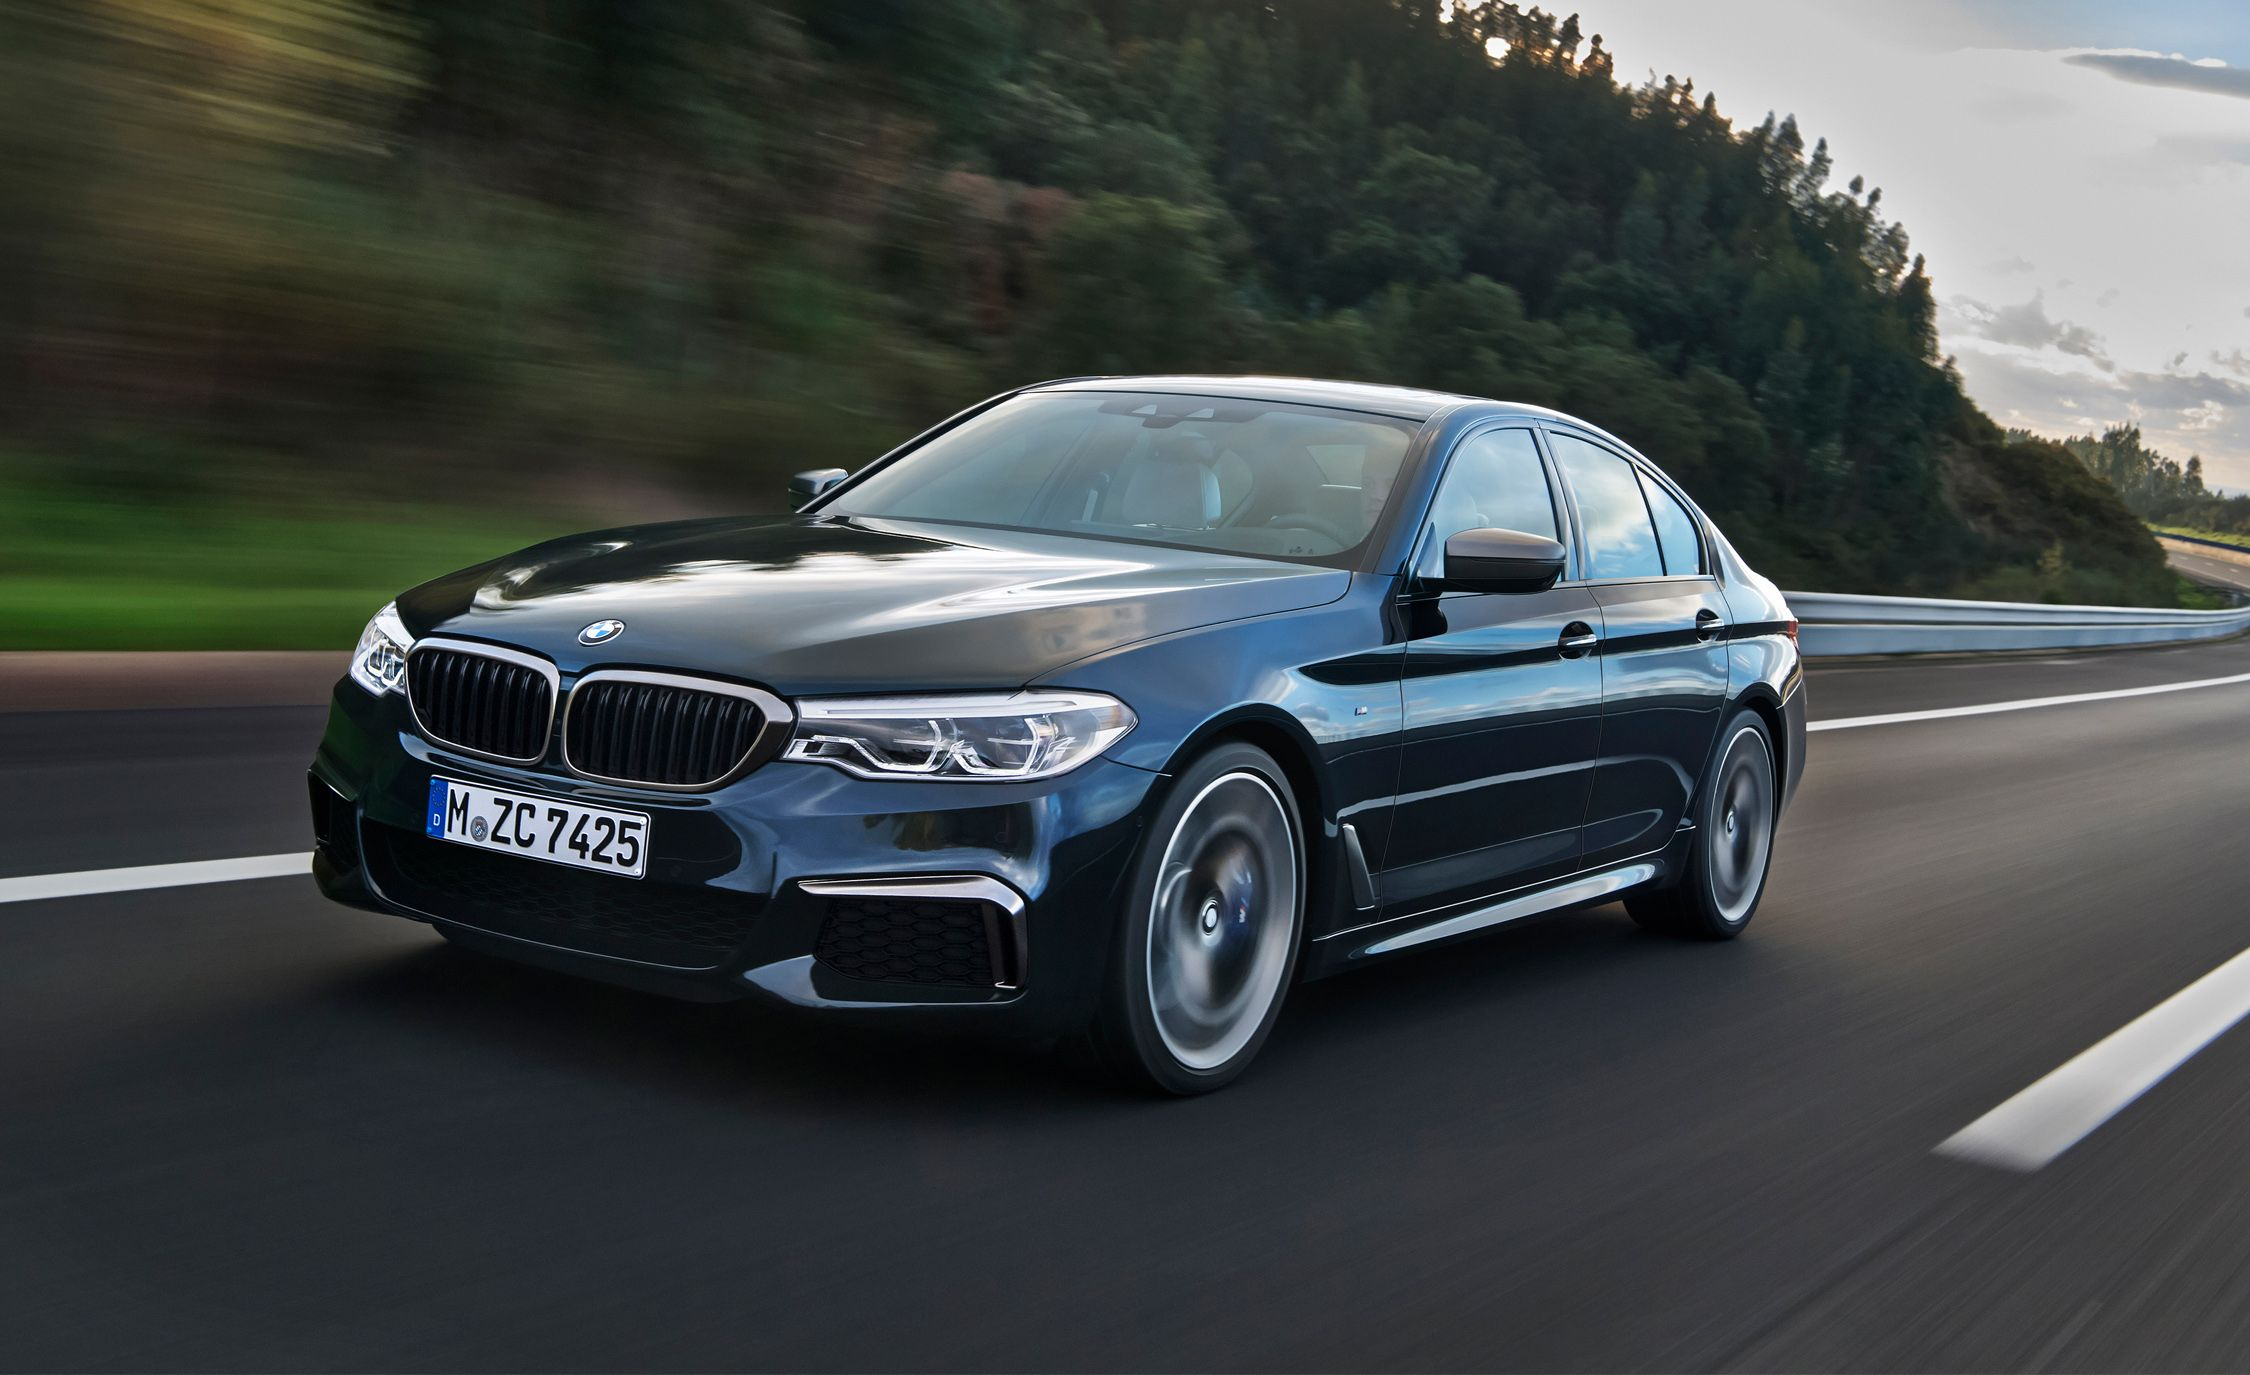 2018 bmw m550i xdrive first drive review car and driver rh caranddriver com BMW 8 Series BMW 4 Series